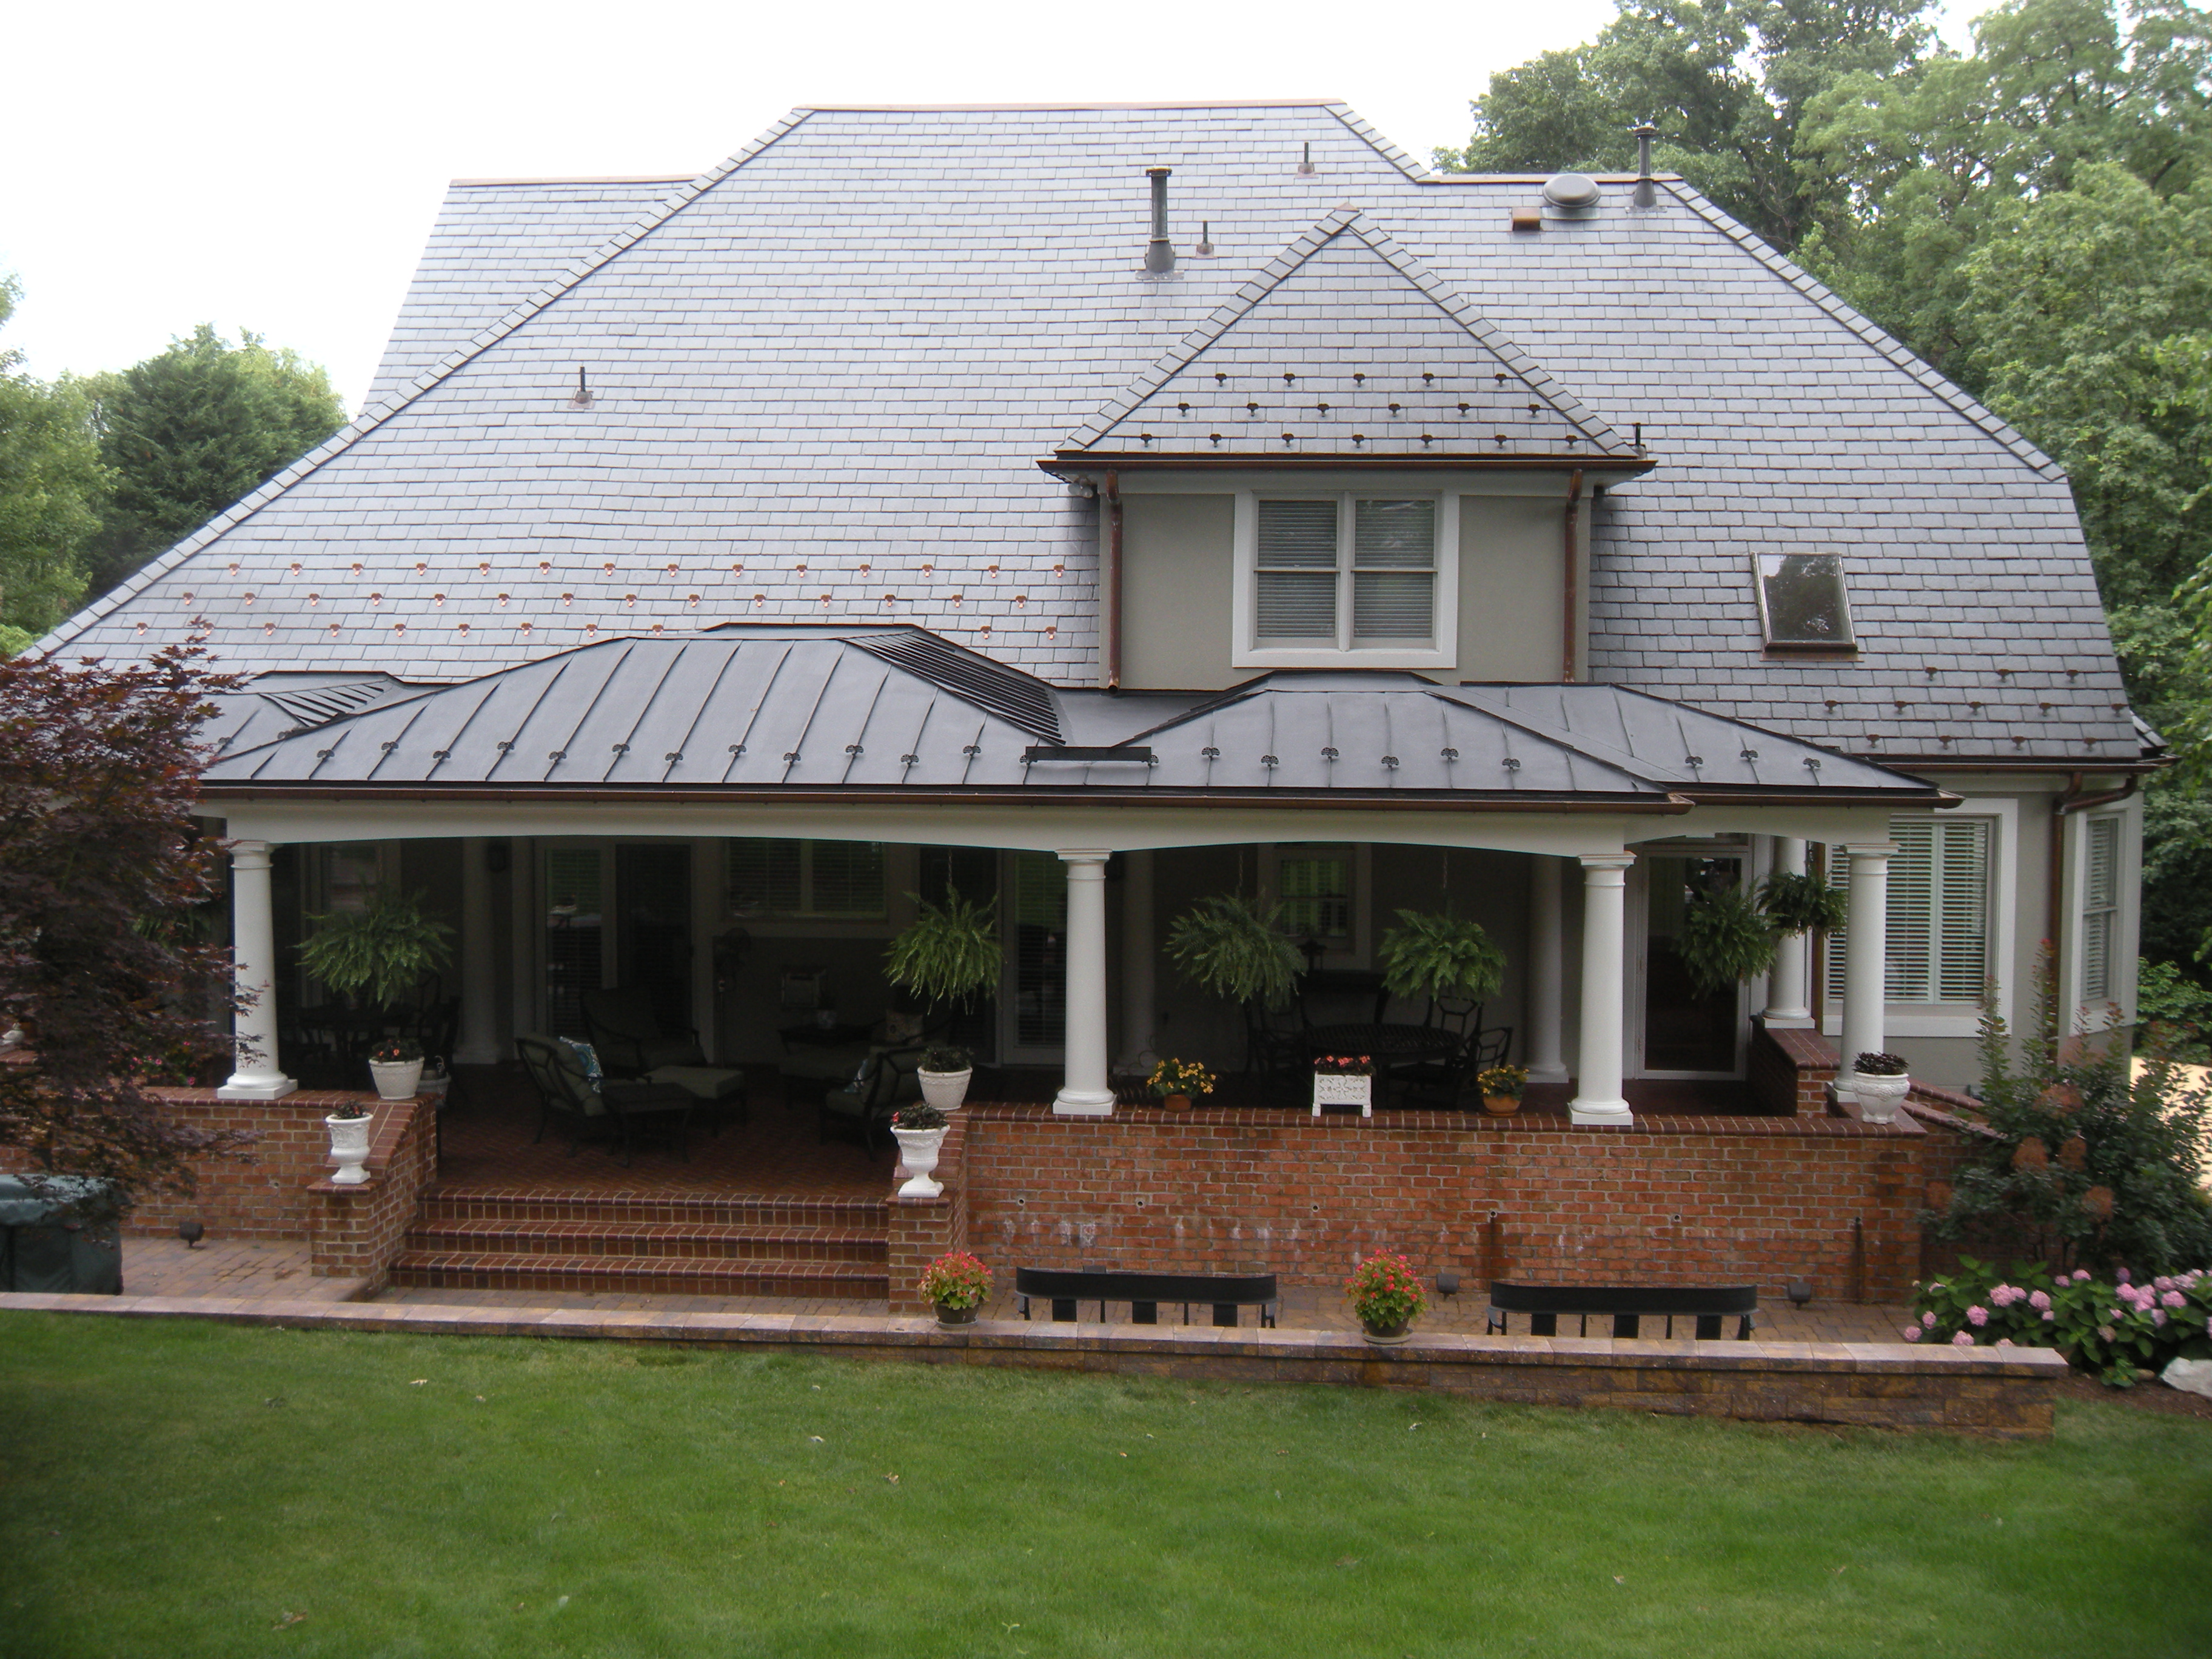 Roofer Northern Va Roofing Northern Virginia Replacement Windows Va Loudoun County Roofing